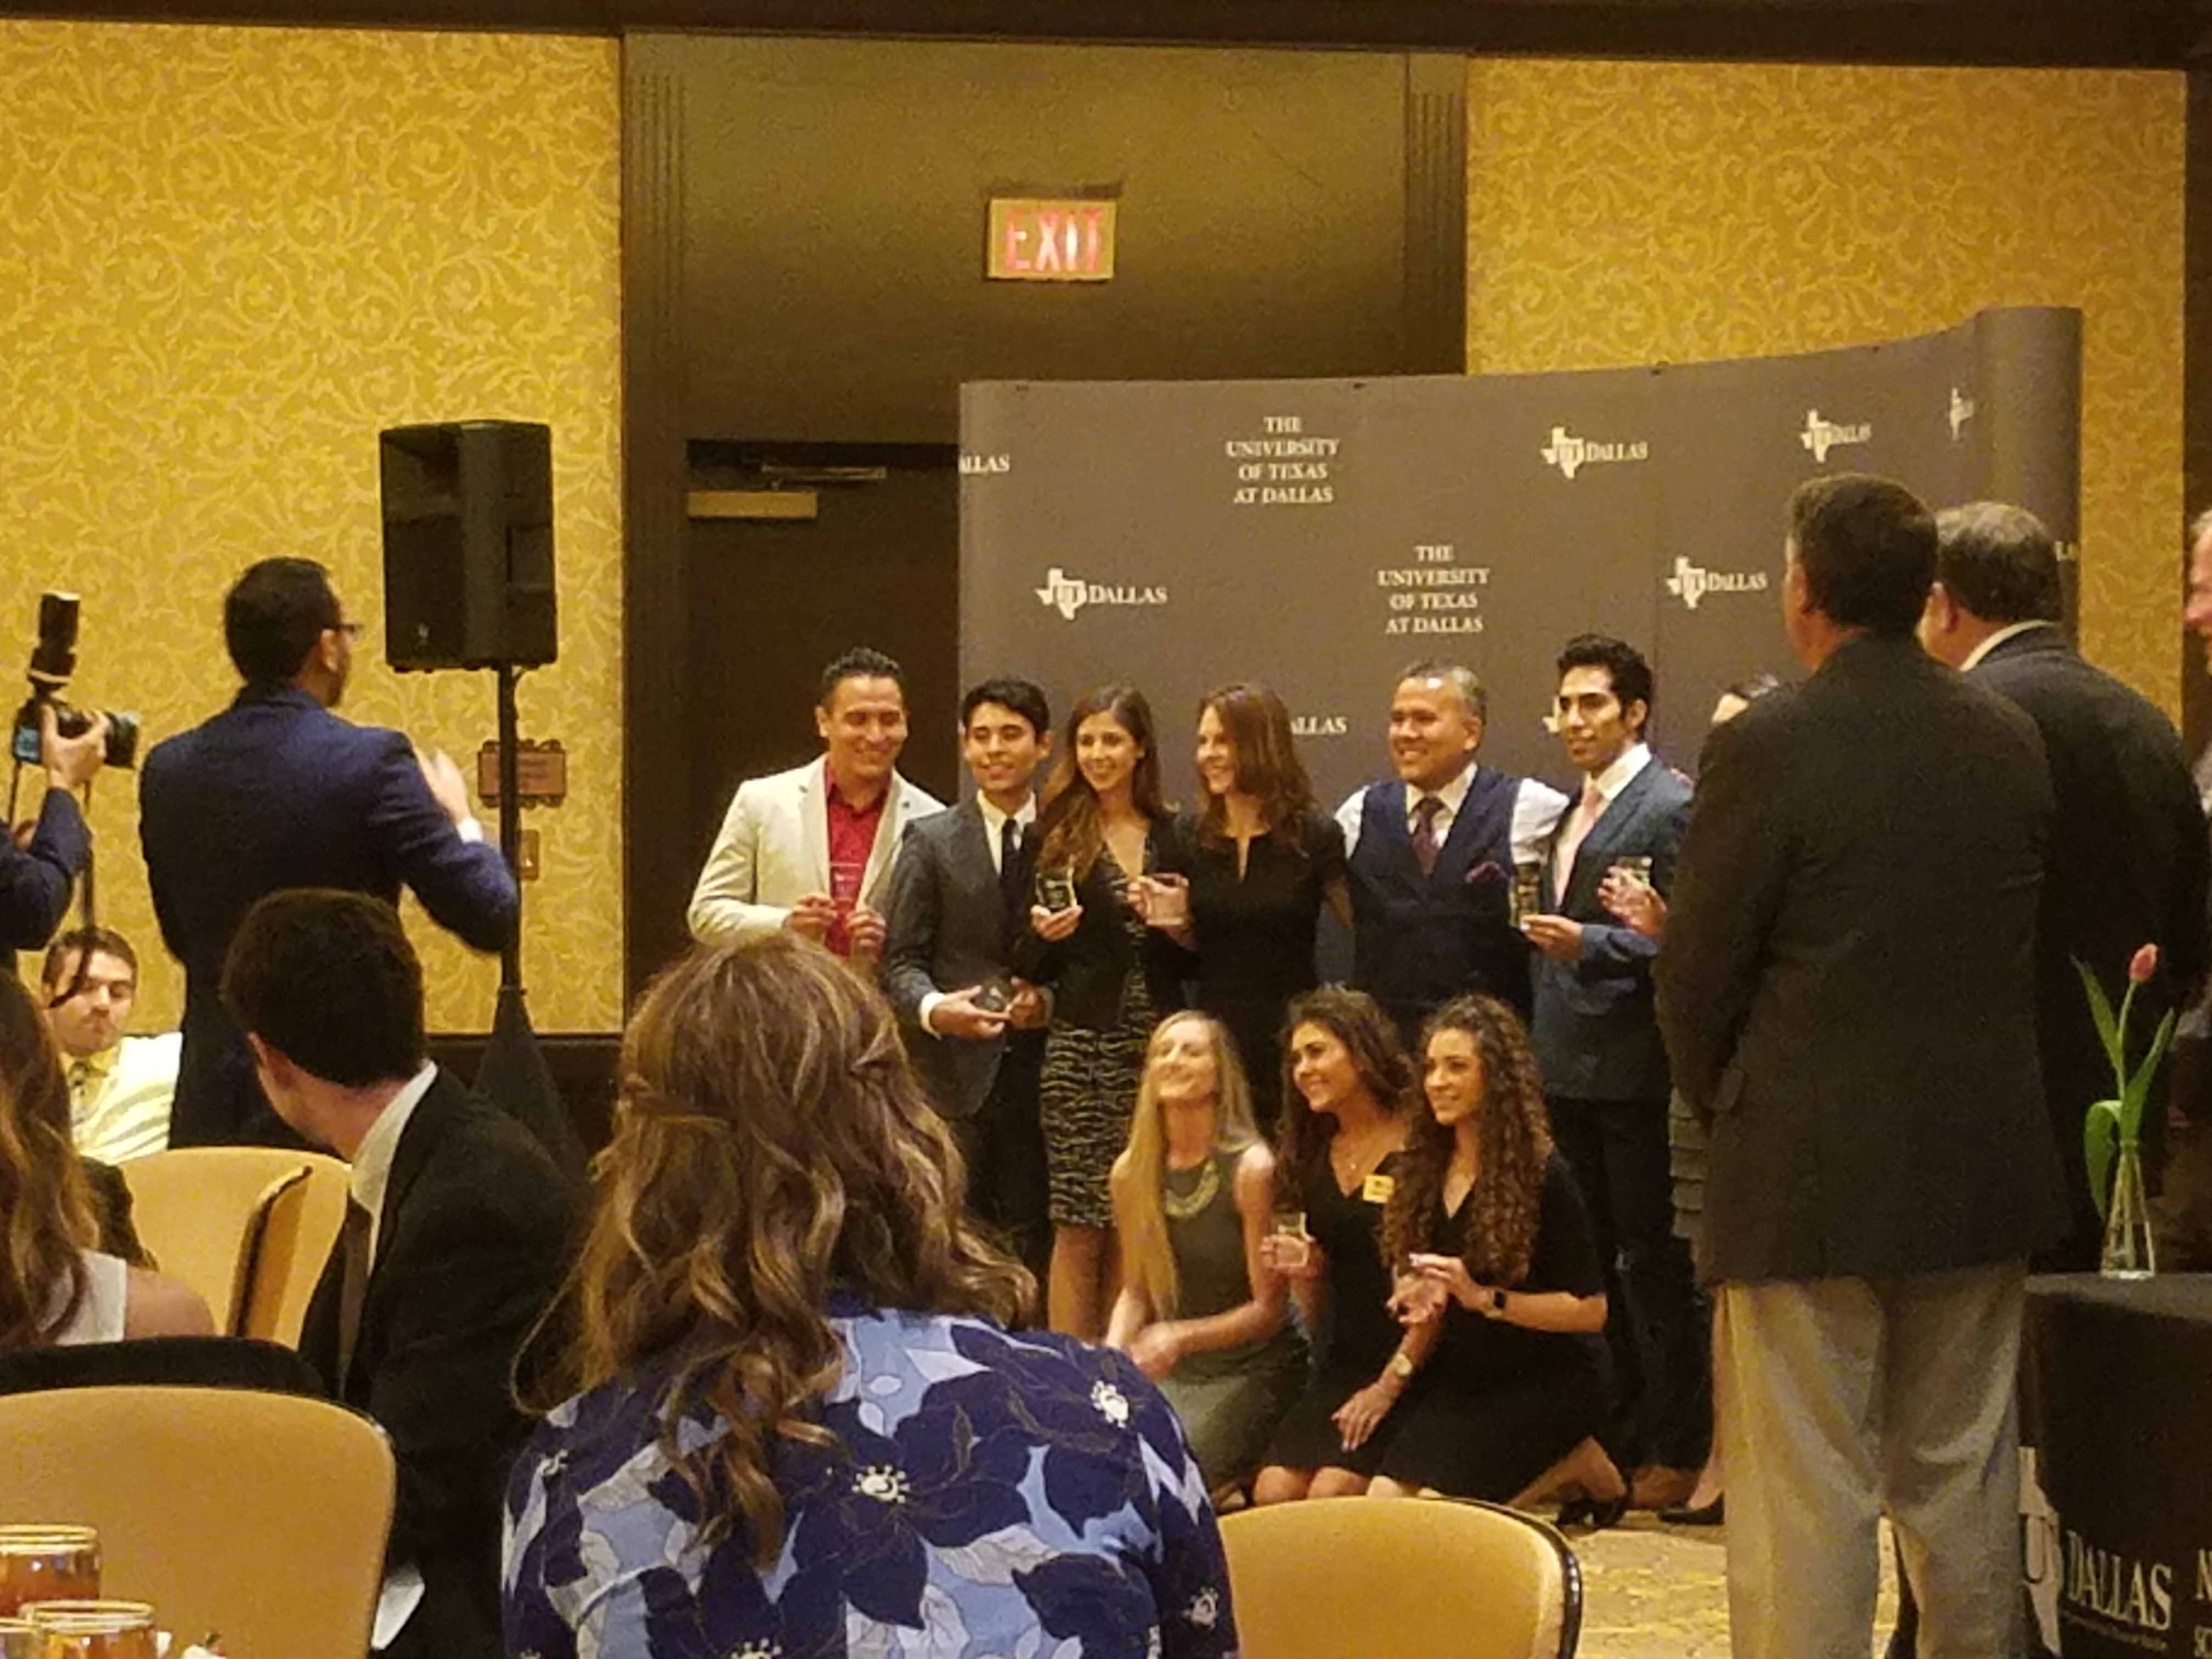 Congrats To All The Students Who Participated And Won What An Amazing Sales Program They Have At UT Dallas